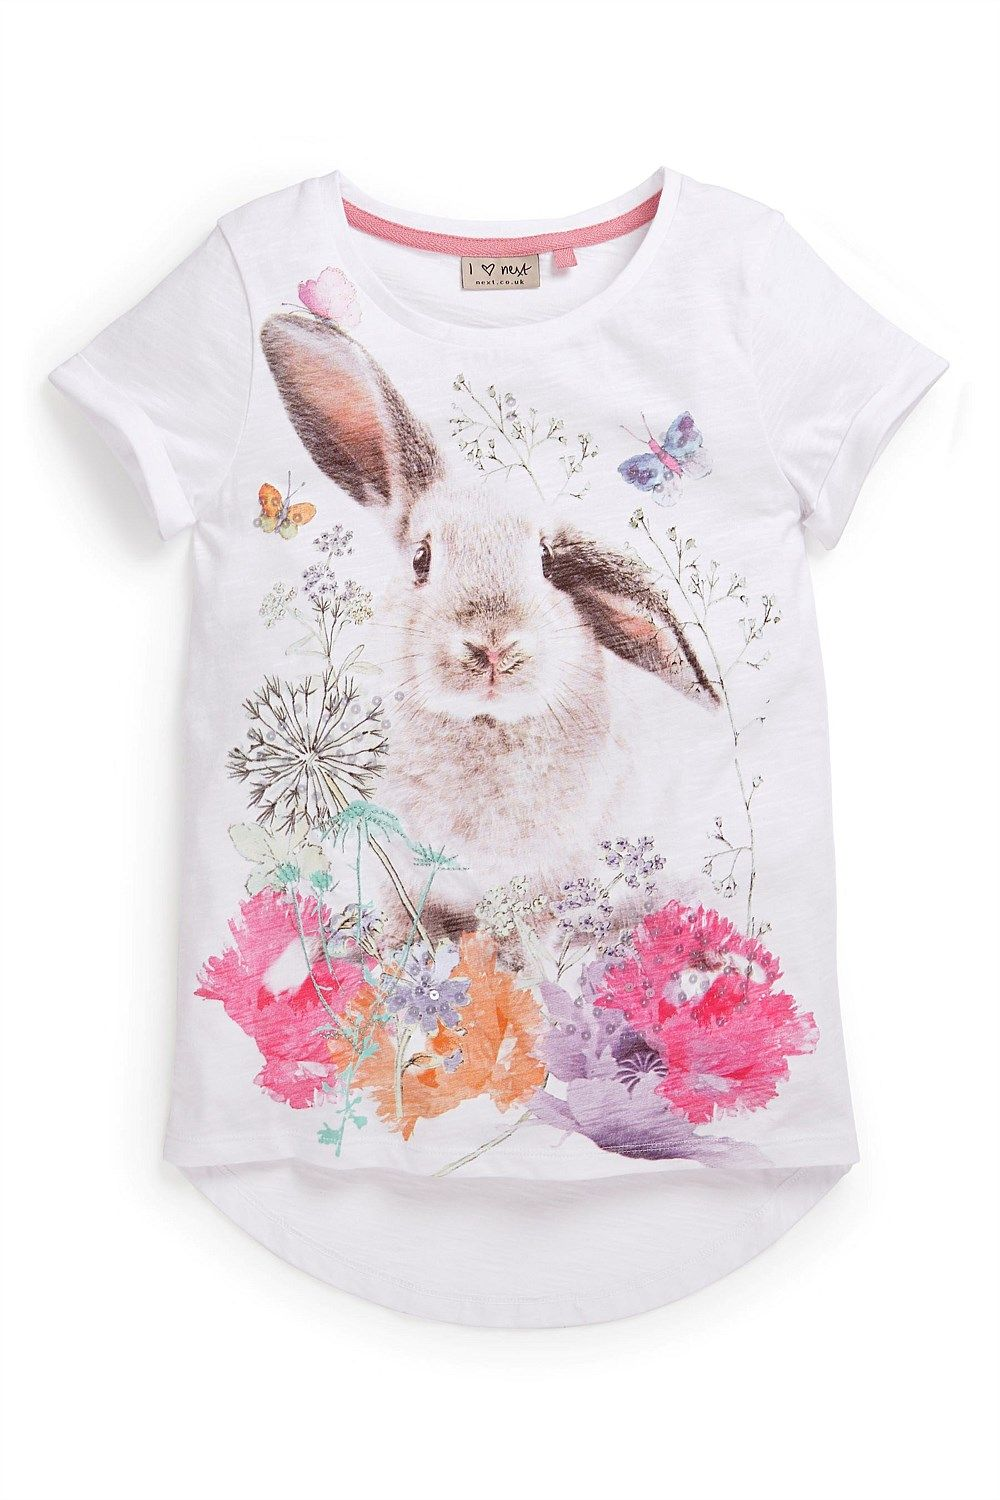 Kid s Clothing - Kidswear and Clothes for Children - Next Pretty Bunny Tee  (3-16yrs) - EziBuy New Zealand b93870fc788